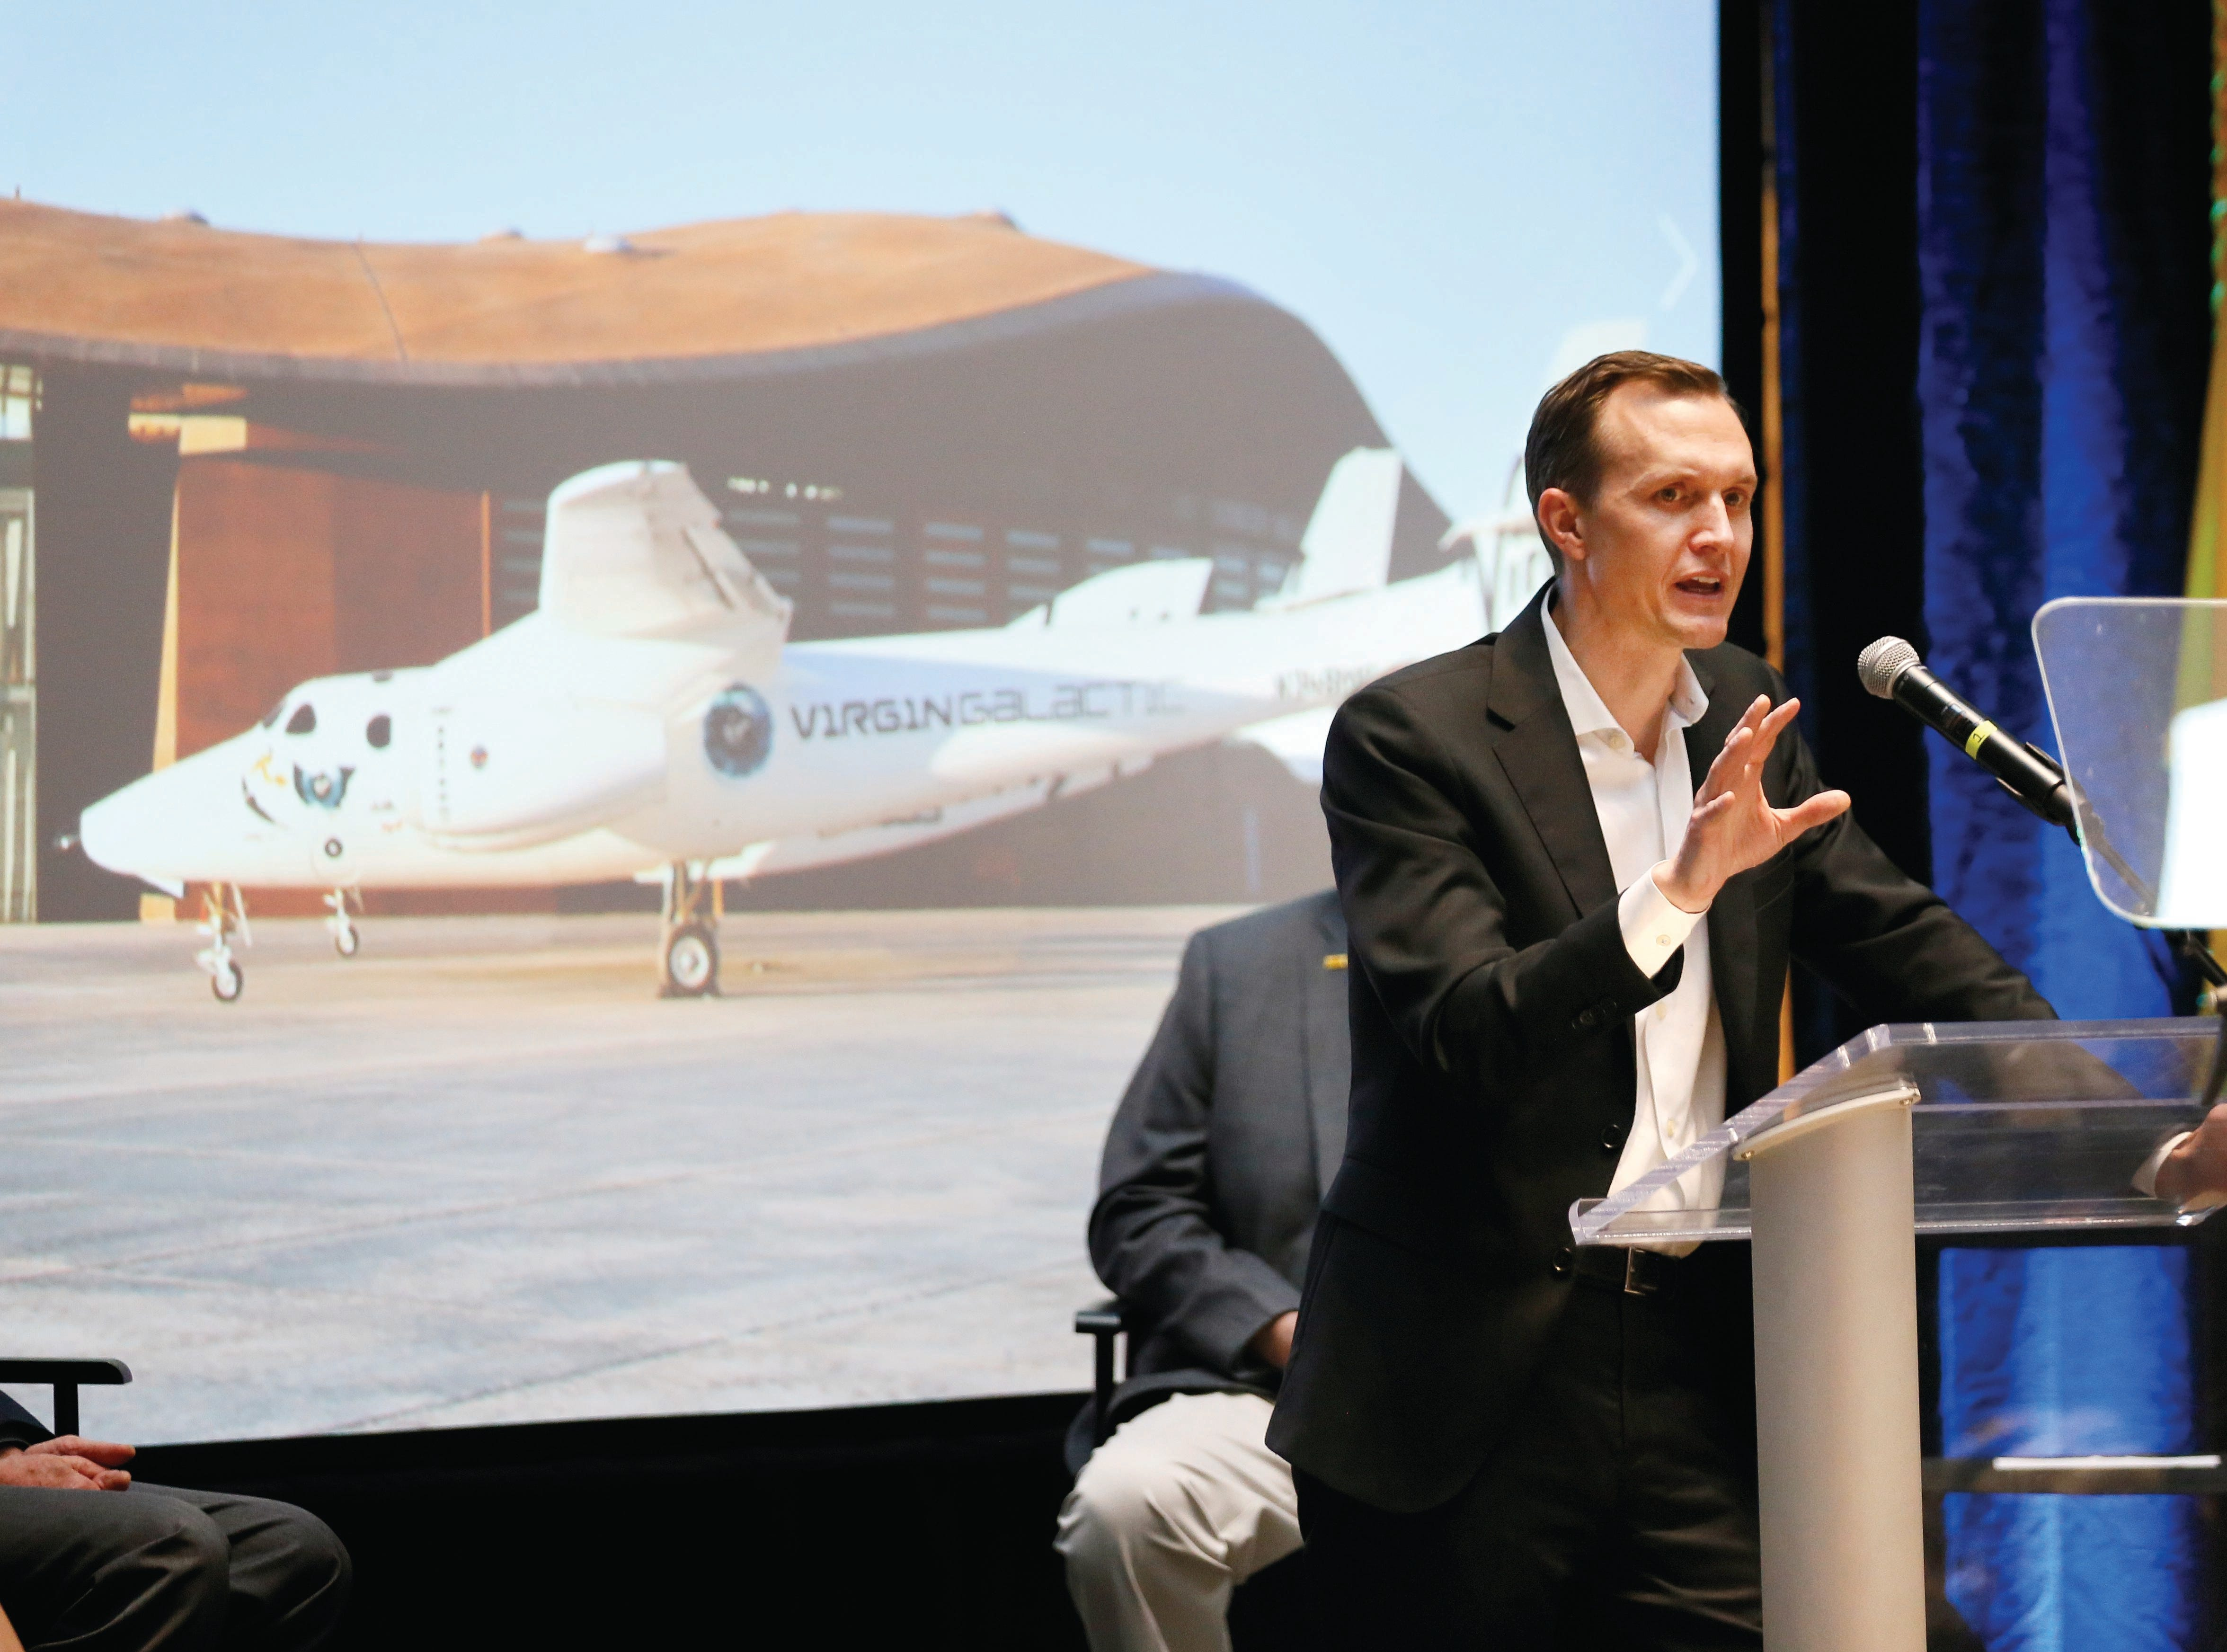 Virgin Galactic CEO George Whitesides speaks at the space company's announcement in Santa Fe on Friday, May 10, 2019.